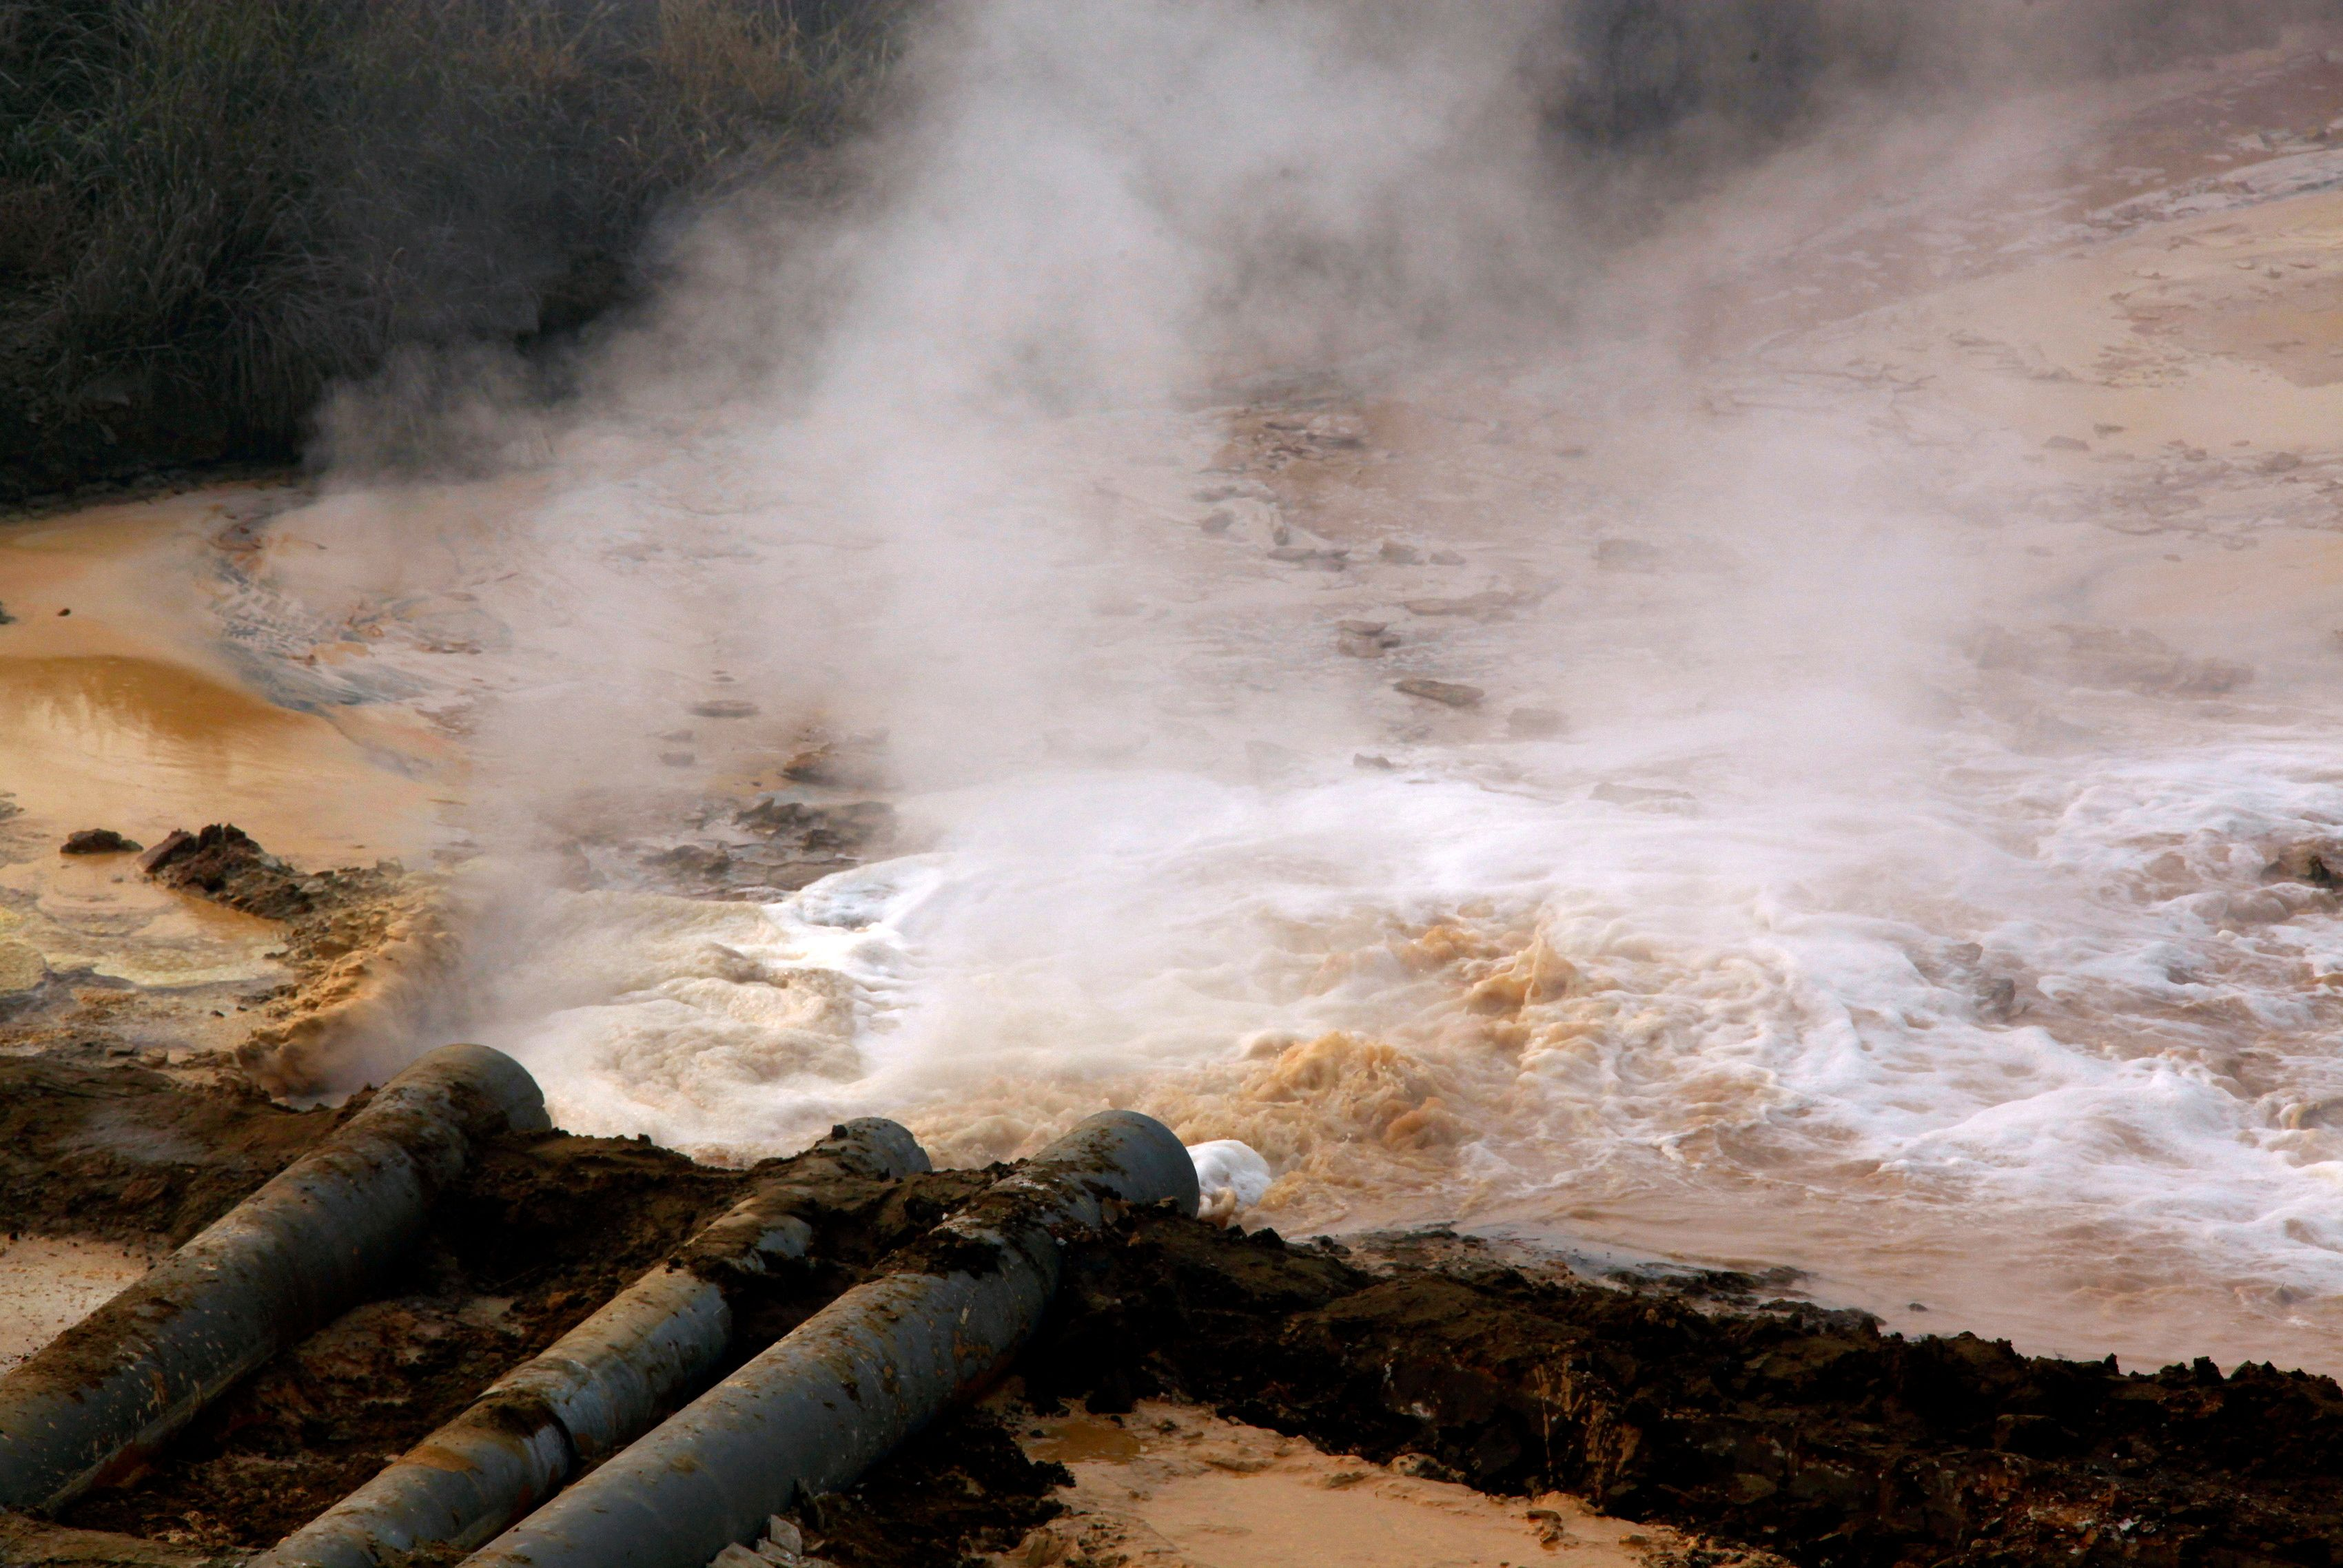 Pipes coming from a rare earth smelting plant spew polluted water into a vast tailings dam near Xinguang Village, located on the outskirts of the city of Baotou in China's Inner Mongolia Autonomous Region in this October 31, 2010 picture.   REUTERS/David Gray/File Photo